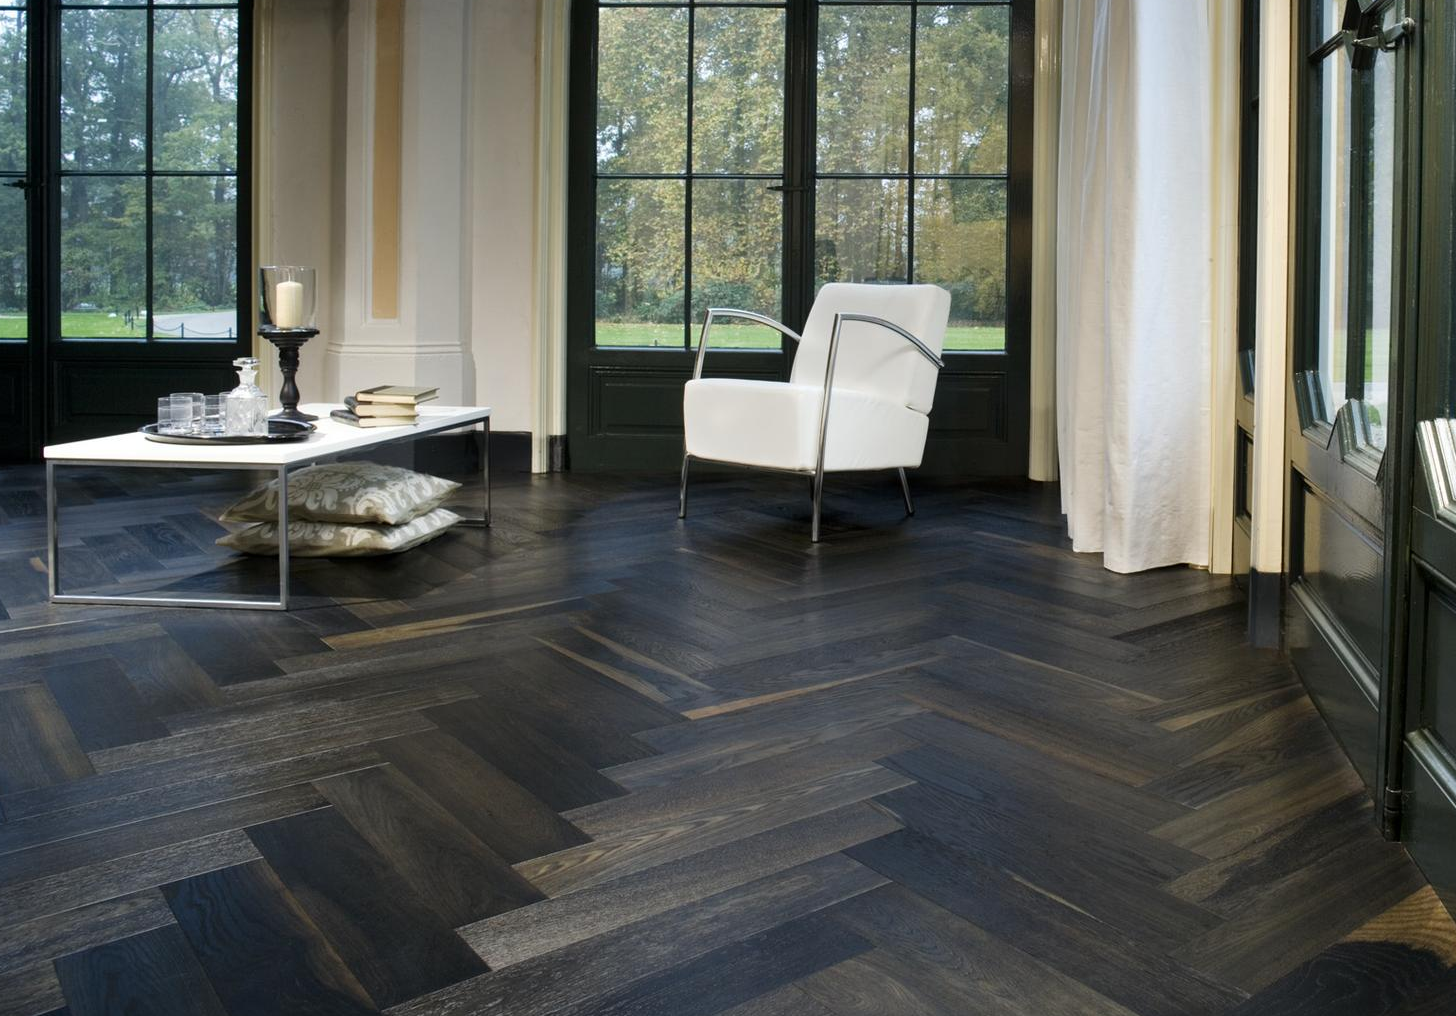 Incredible parquet floors homedesignboard for Black hardwood flooring